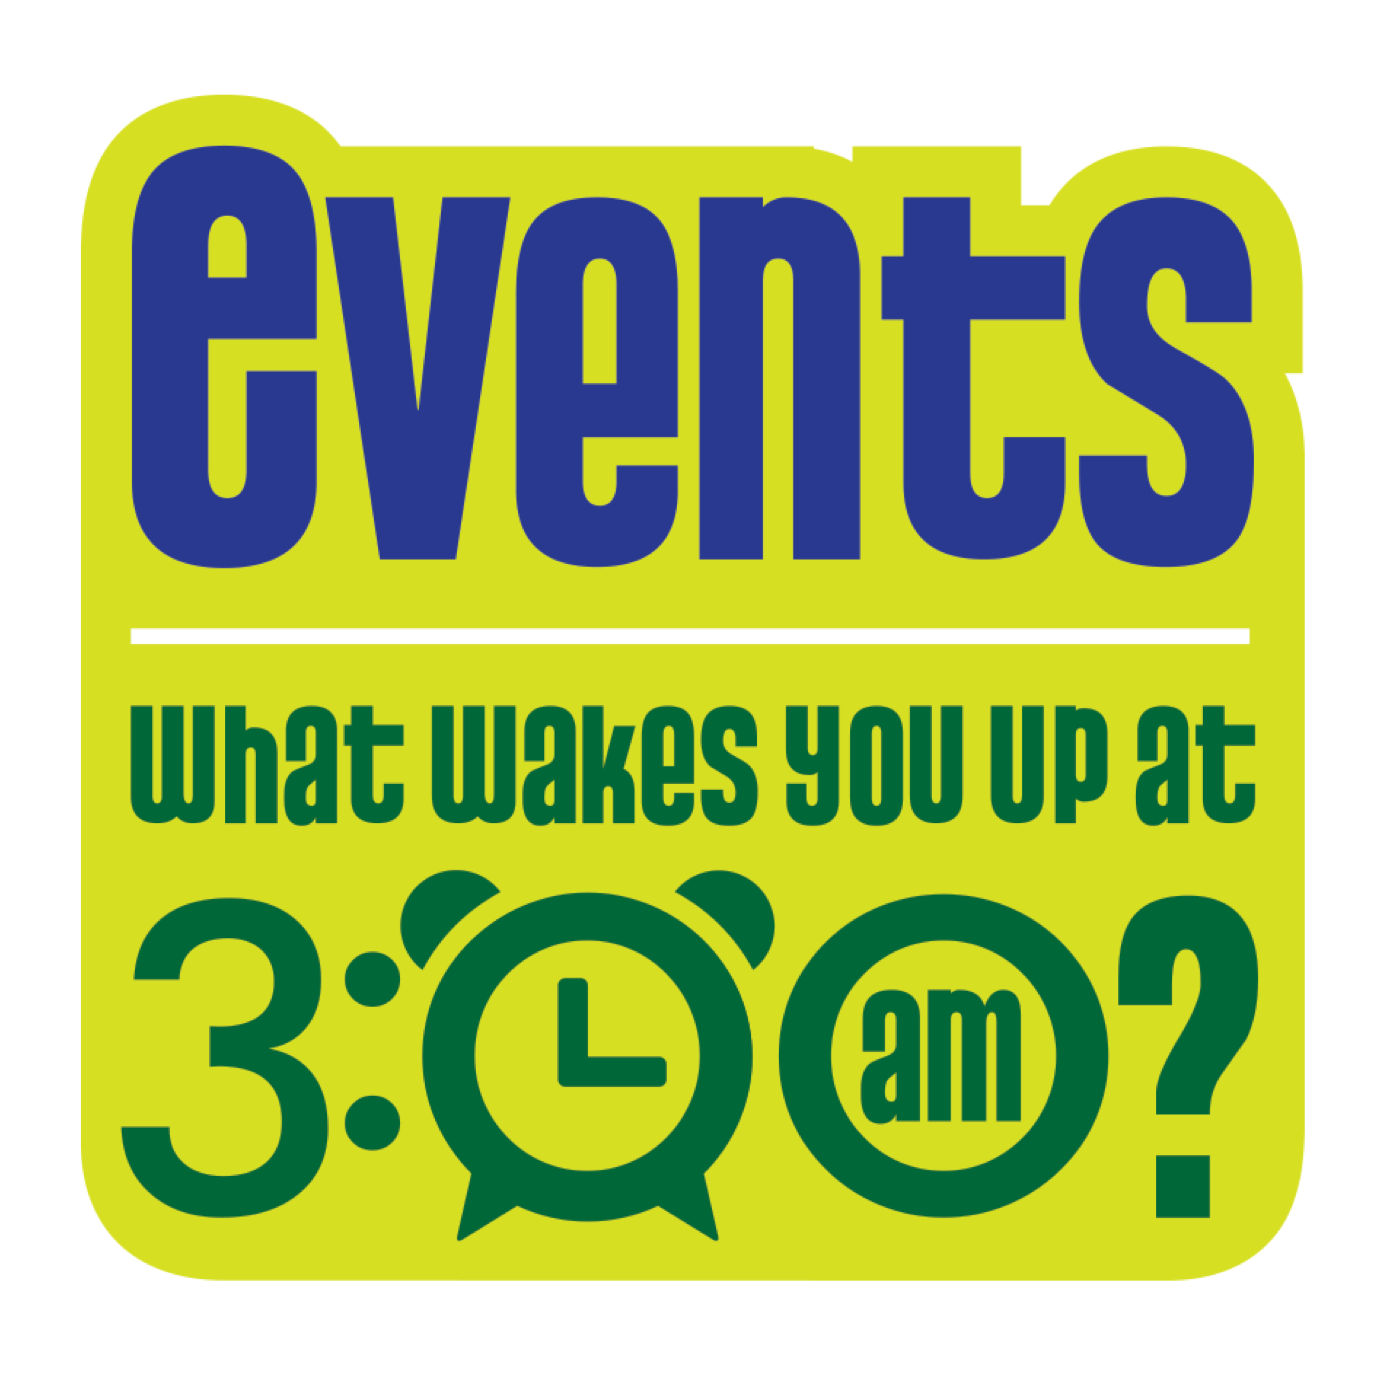 Events: What Wakes You Up at 3:00 am?